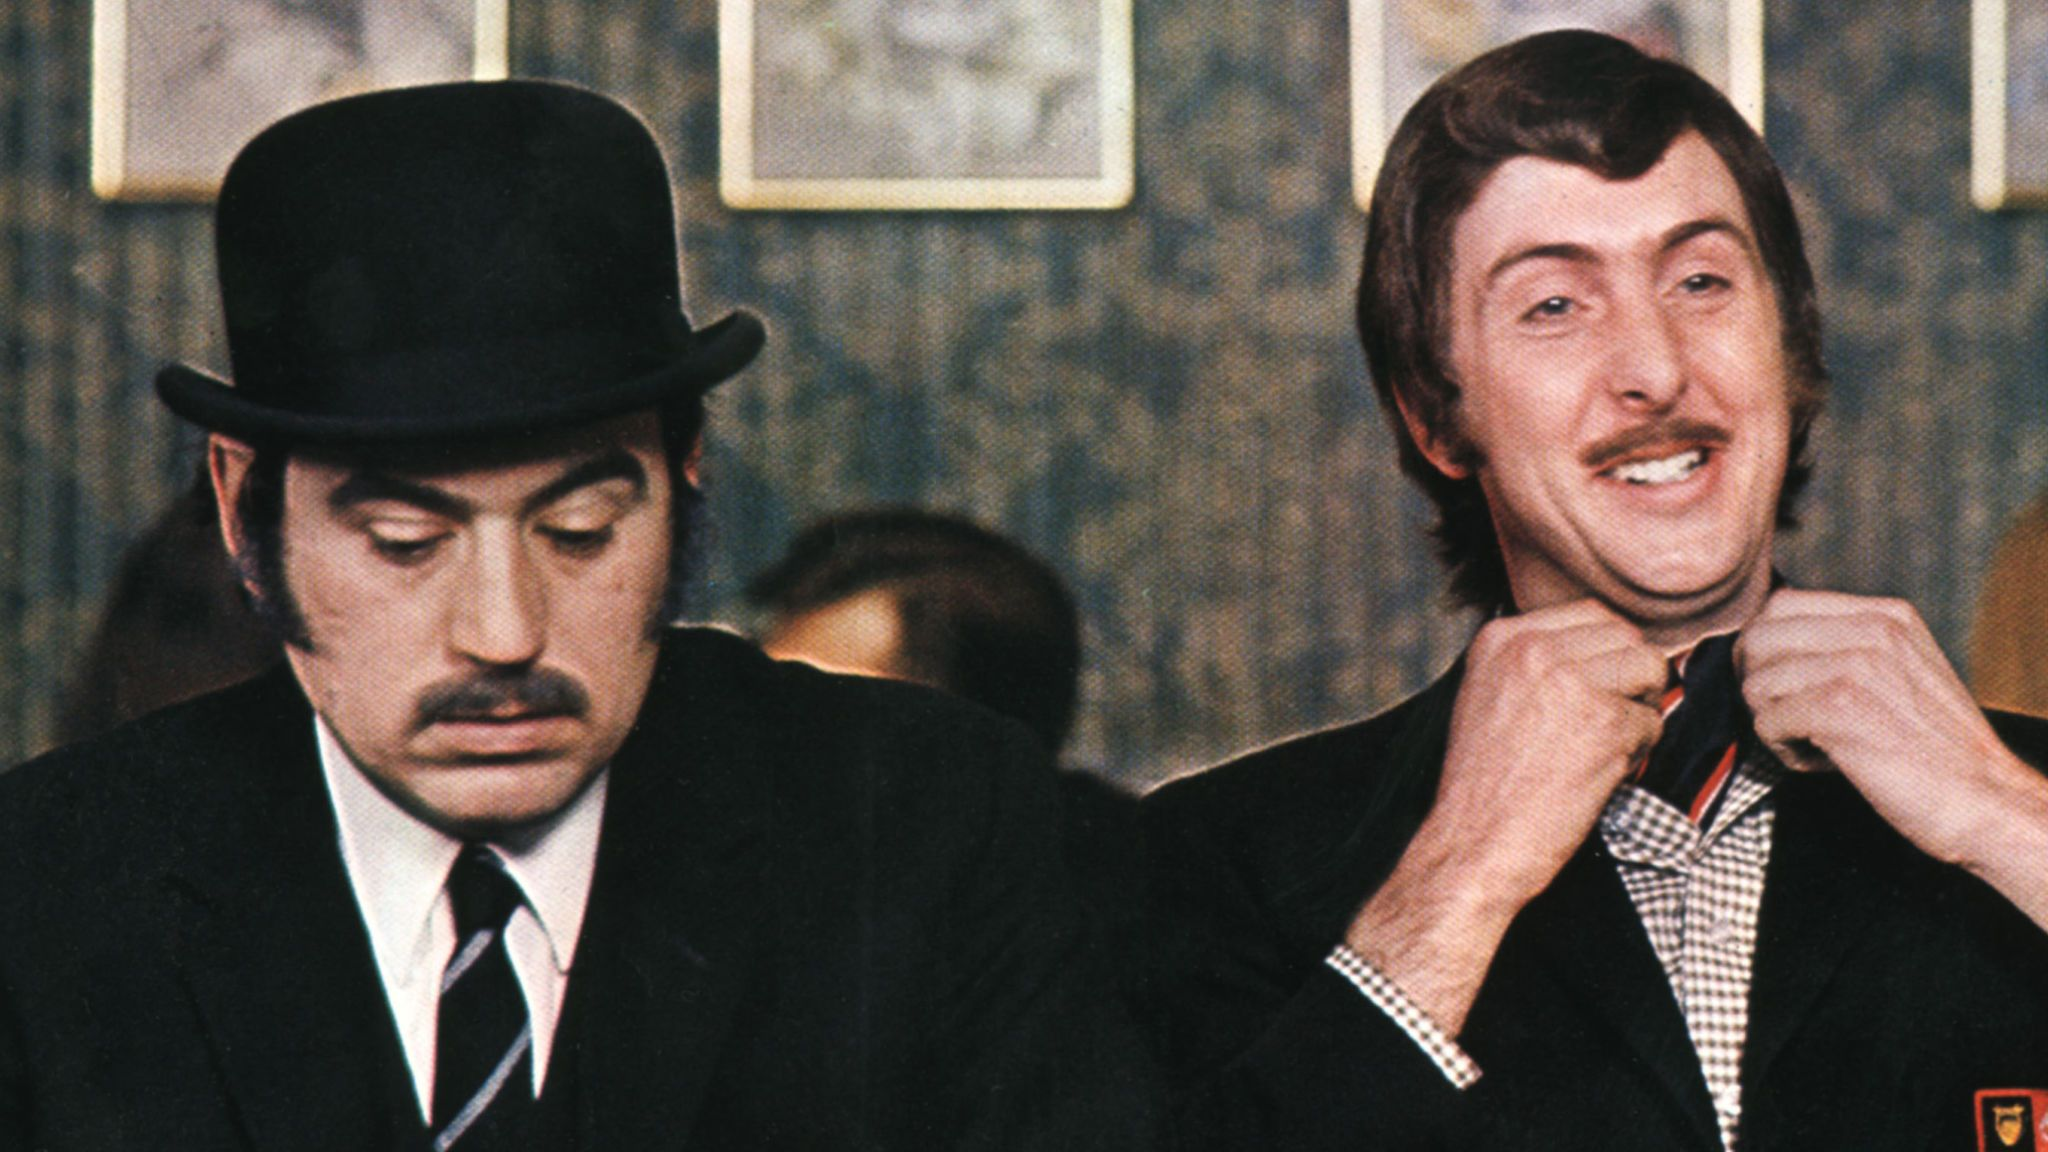 Terry Jones and Eric Idle in 1971